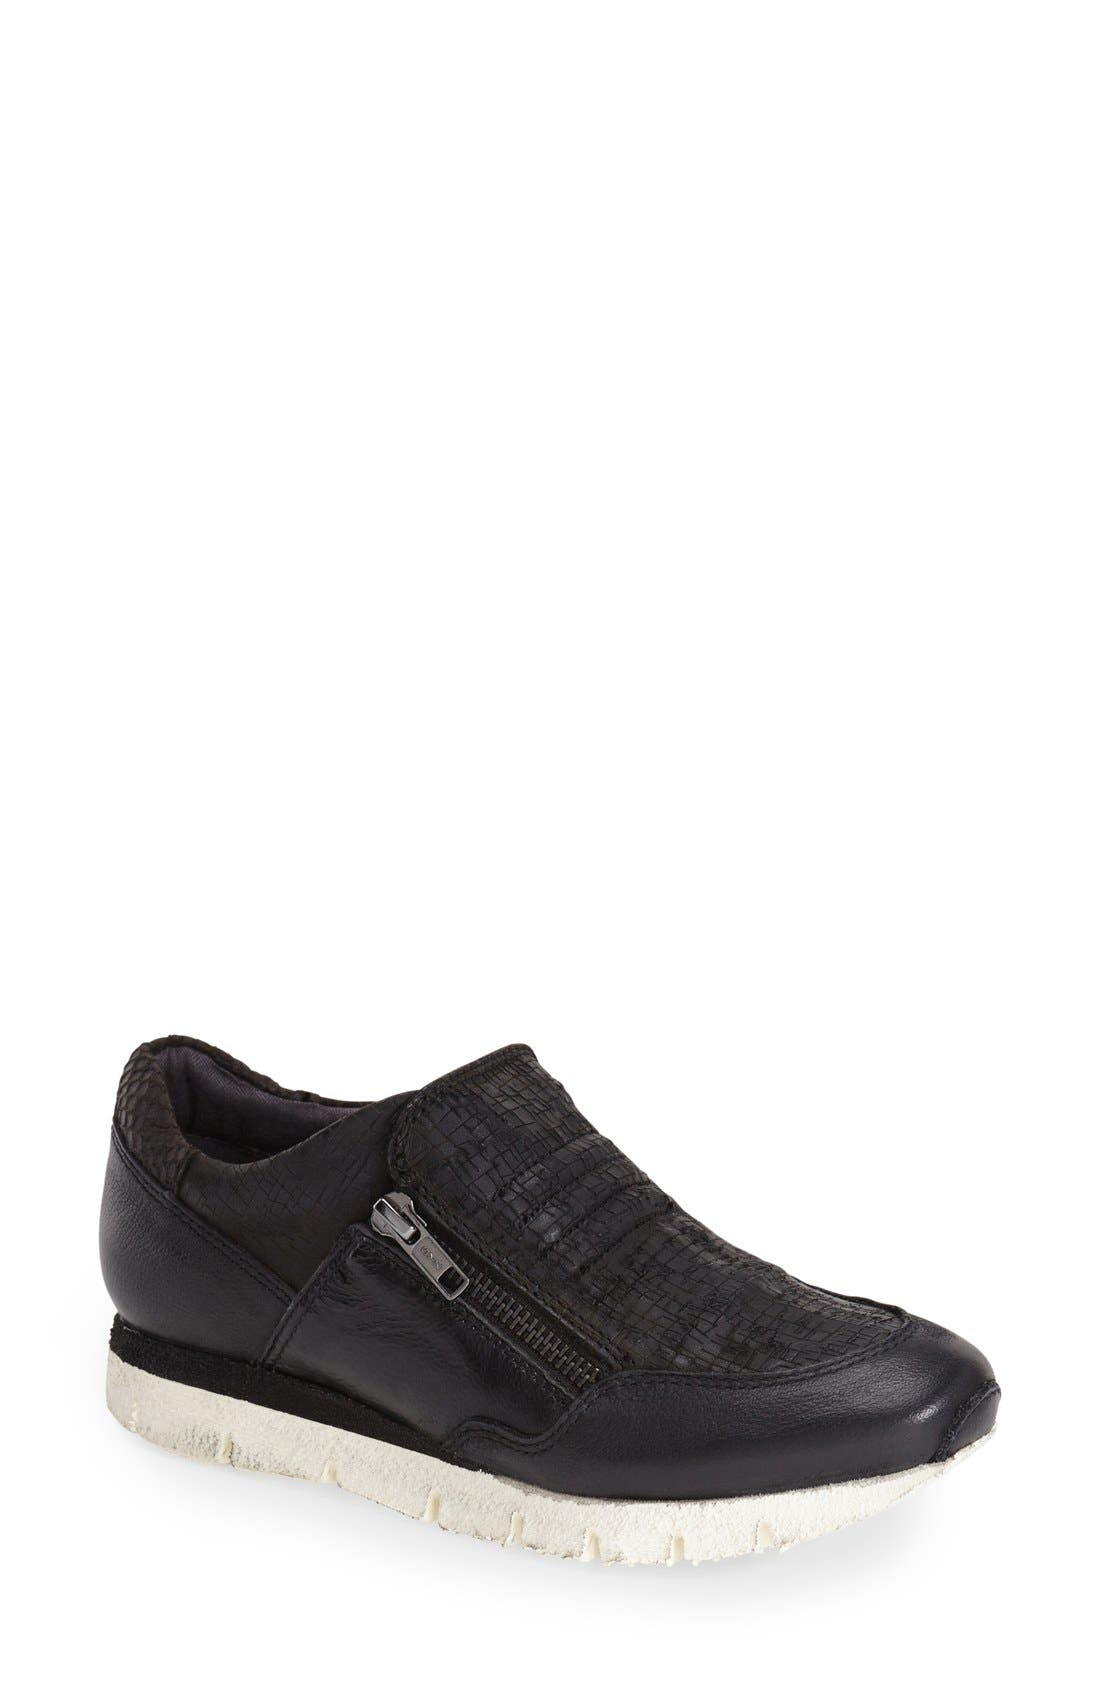 'Sewell' Sneaker,                         Main,                         color, 001